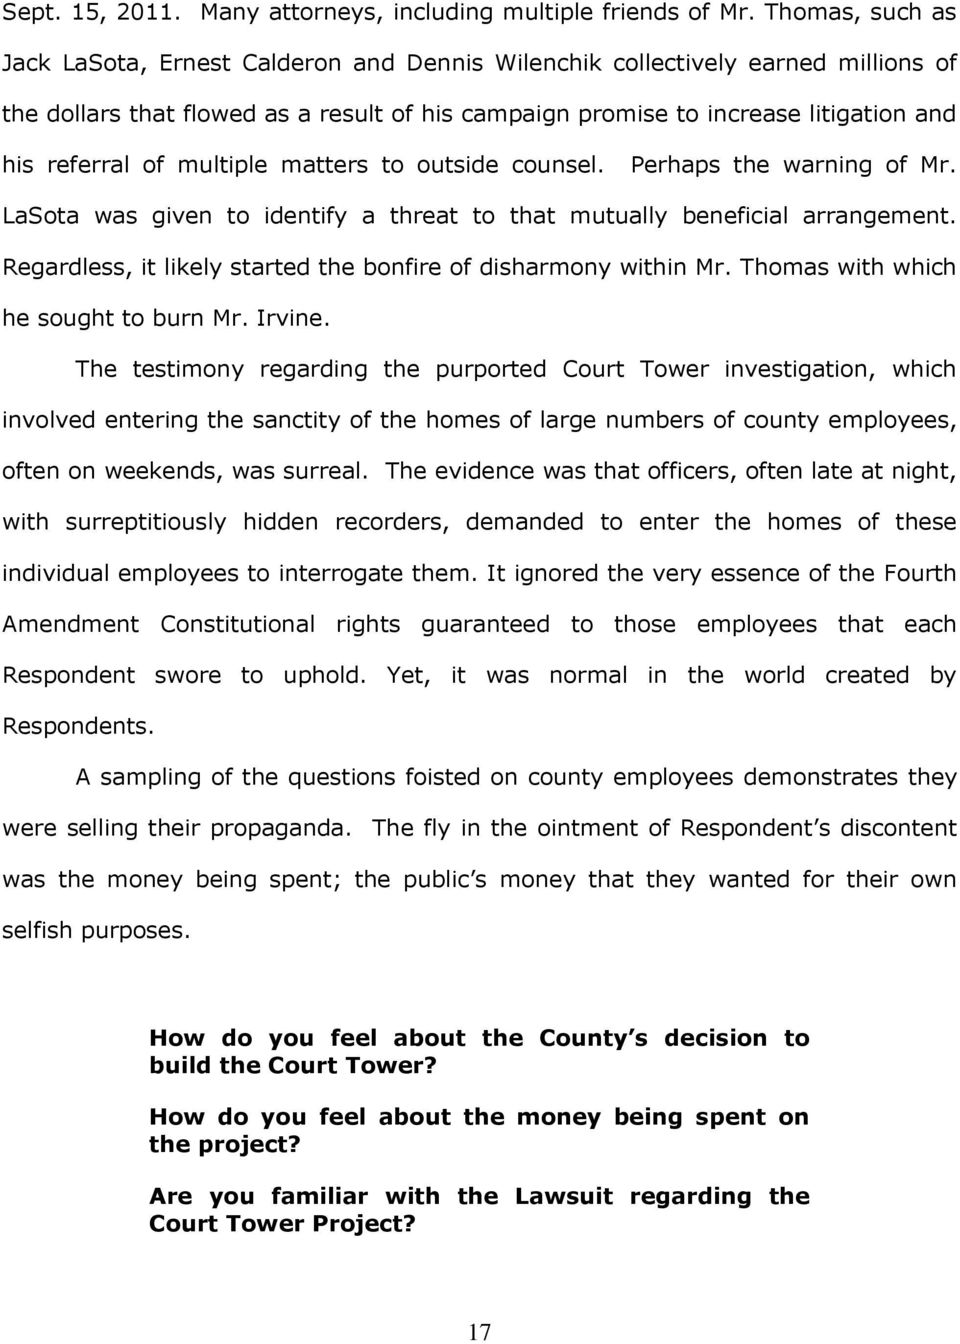 of multiple matters to outside counsel. Perhaps the warning of Mr. LaSota was given to identify a threat to that mutually beneficial arrangement.